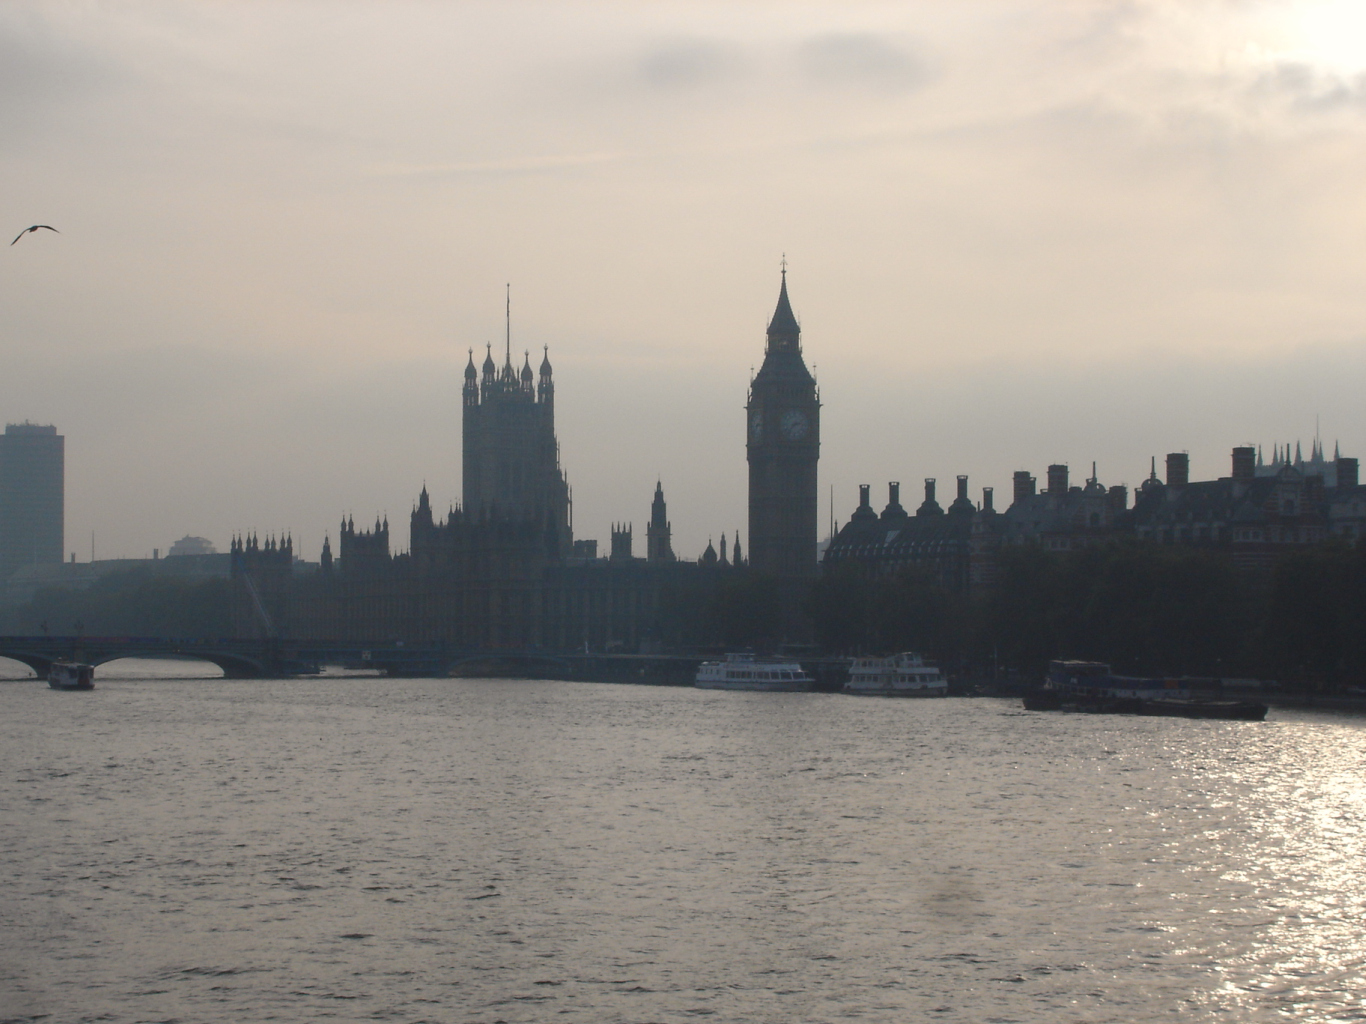 The London Skyline Stands Slhouetted With Big Ben Prominently Visible I Was Waiting For Sun To Come Out From Behind Clouds Get A Direct